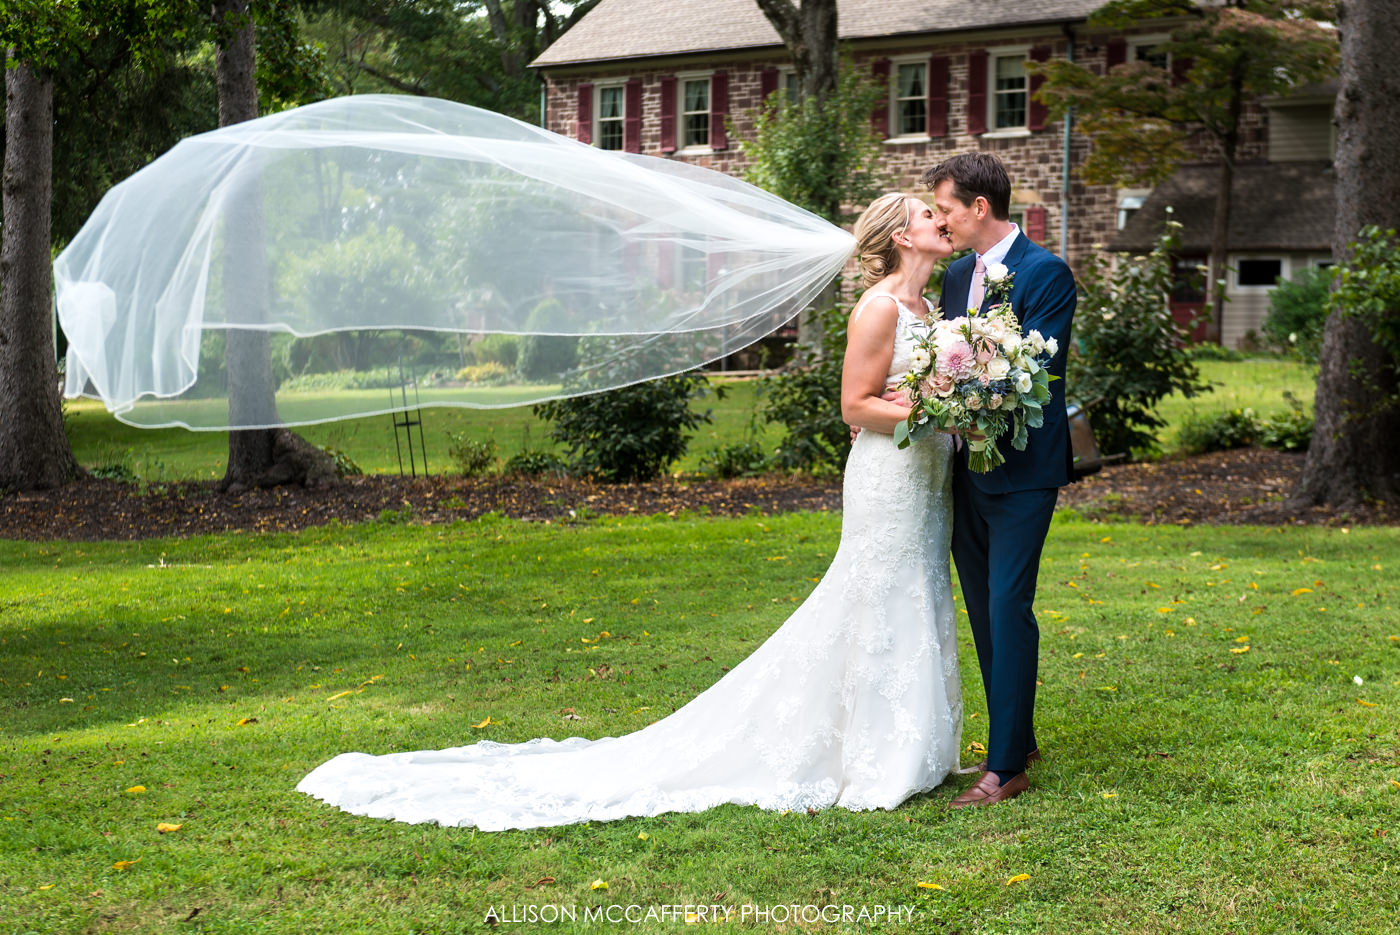 Wedding photo of bride with long veil floating in air